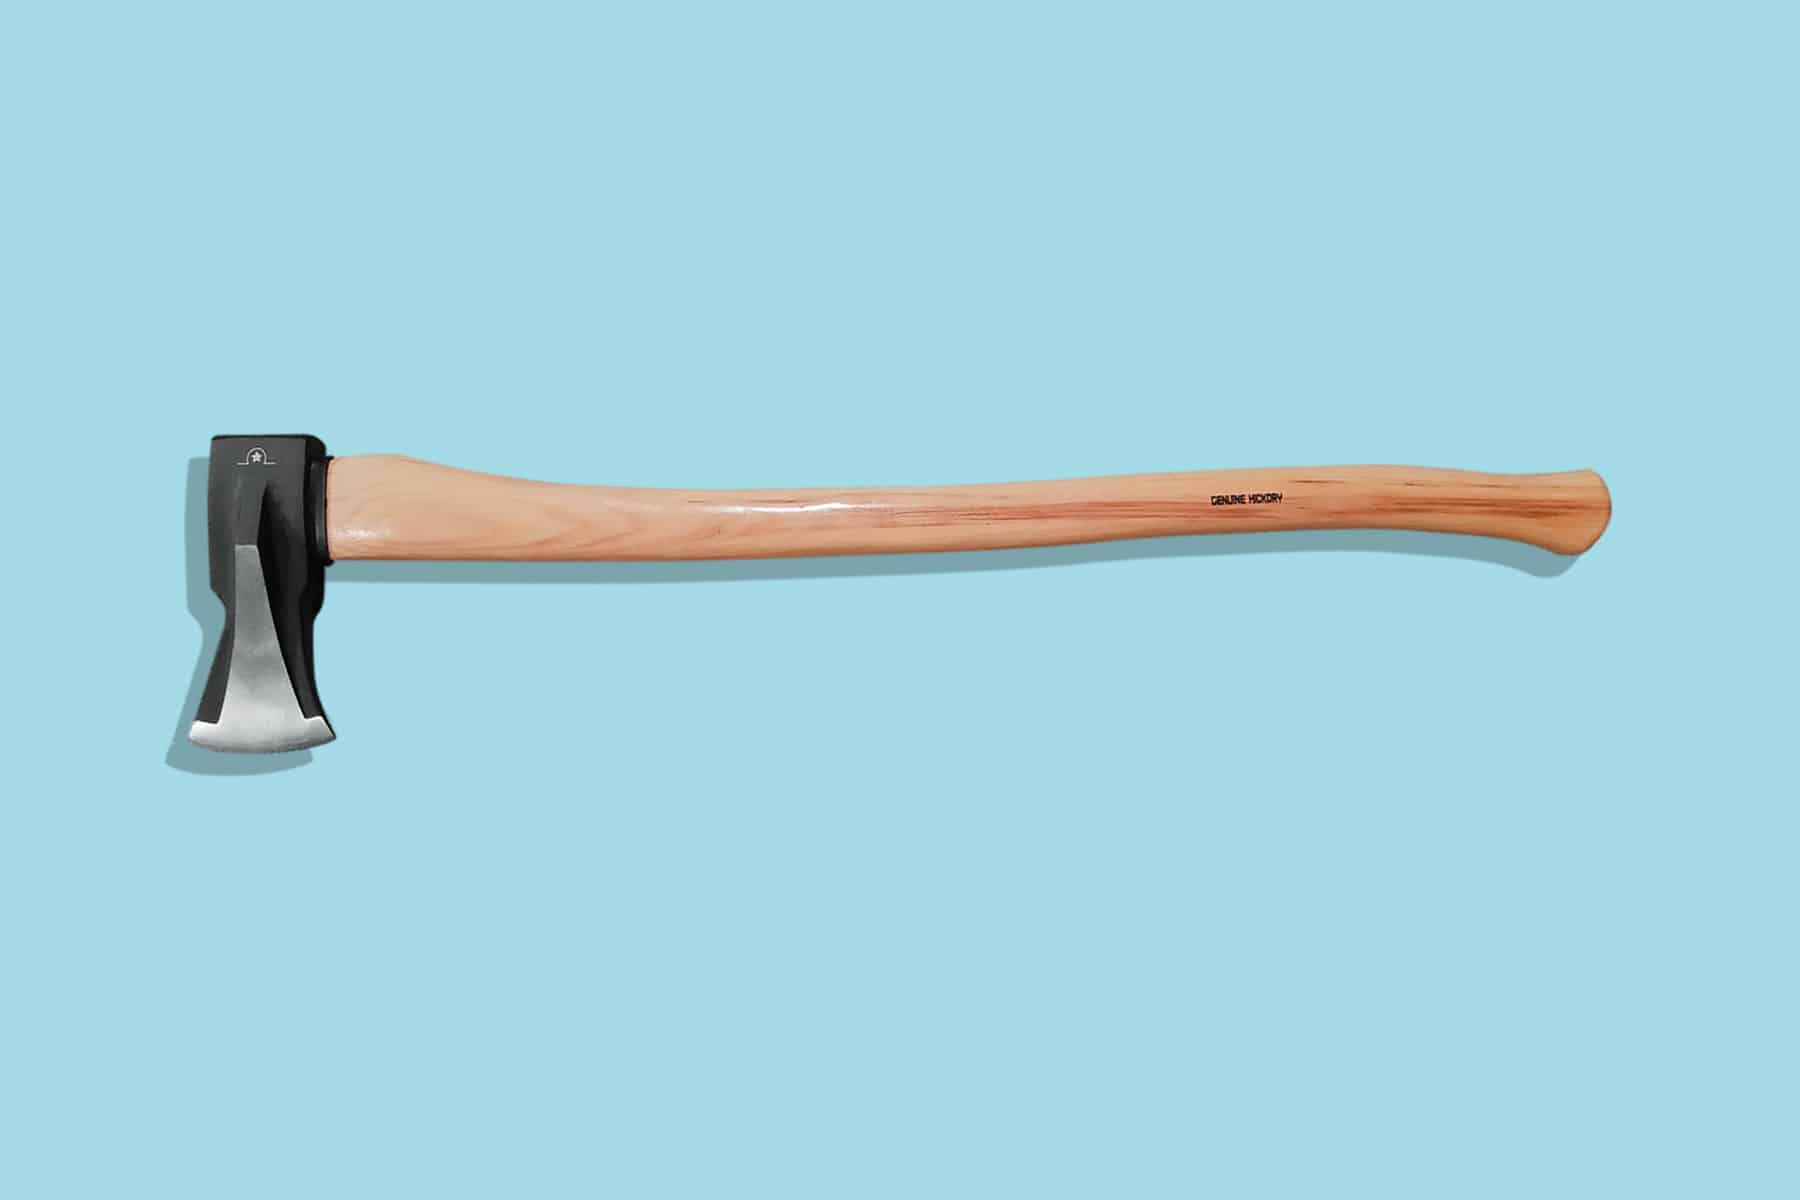 This is the cover photo for our Best Wood Splitting Mauls article. It features a wood maul with hickory handle overlaid on a blue background.